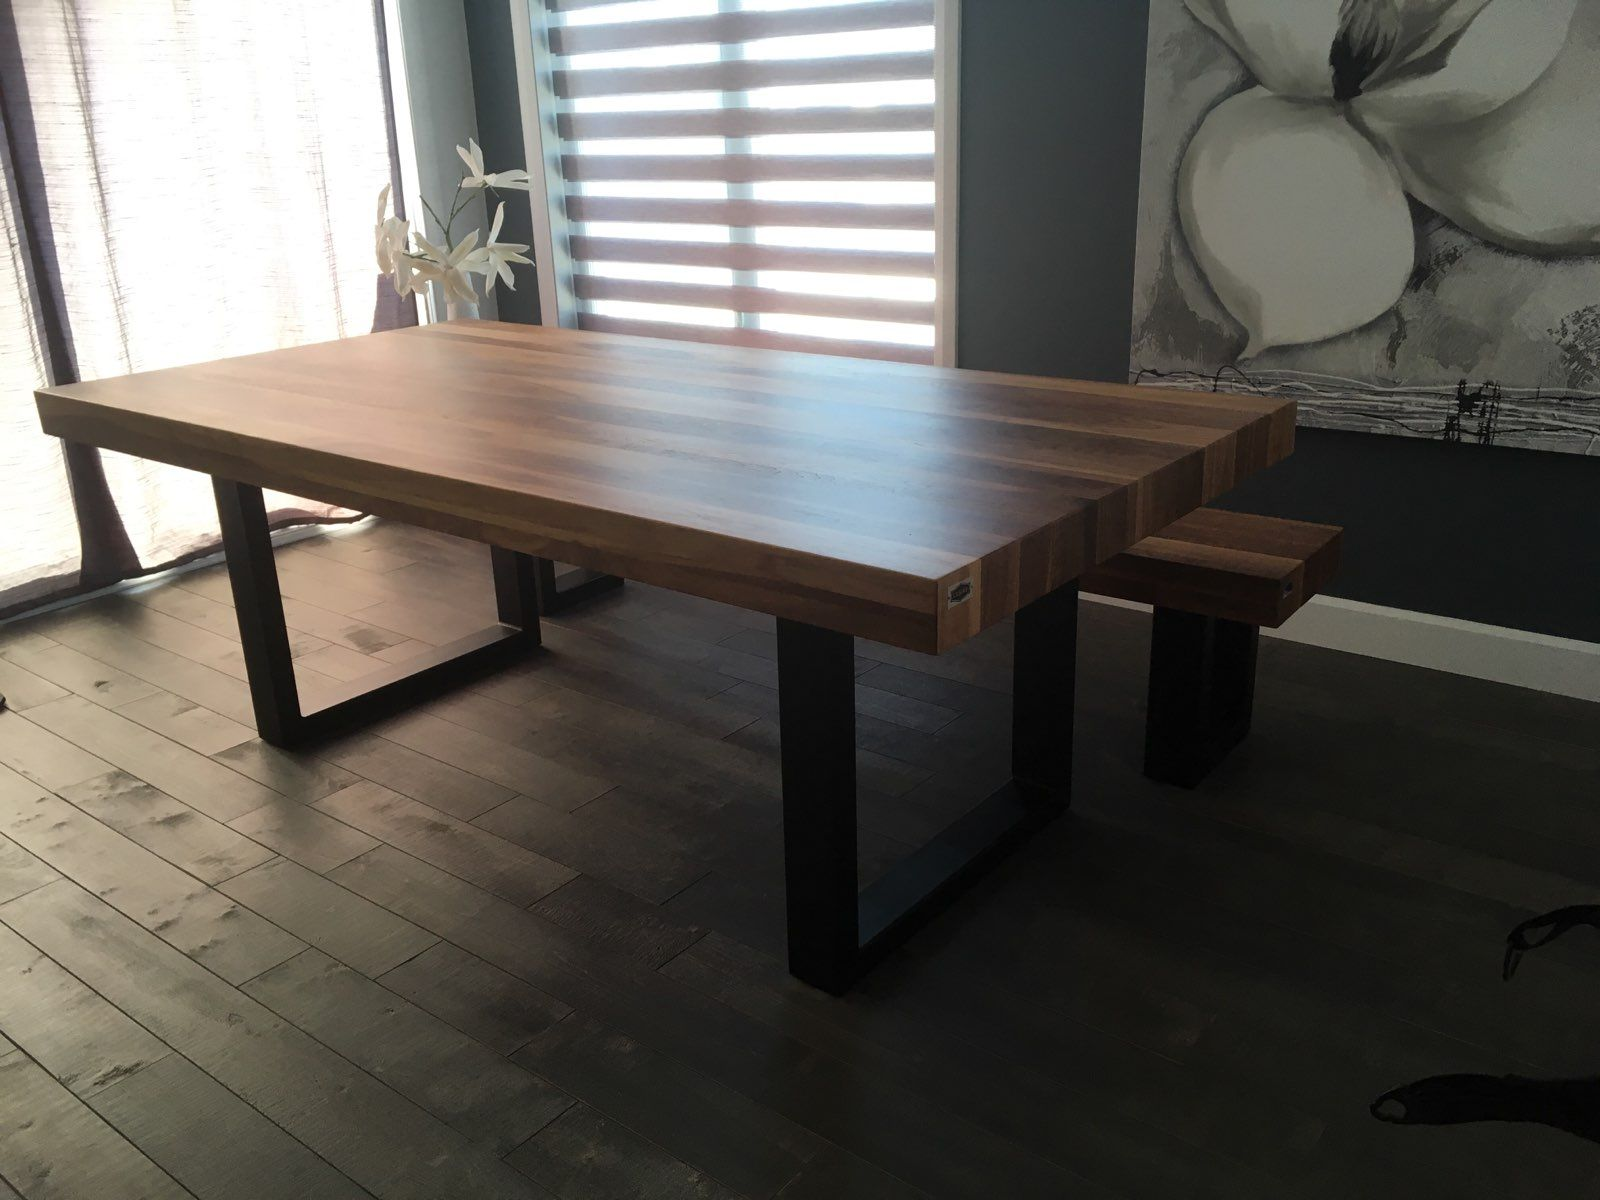 Table St Irenee Noyer Naturelle Grande A 84 X 42 3 12 Epais Banc Surmesure Lusine Stirenee Banc Noyer Naturel Tab Table Lusine Bancs